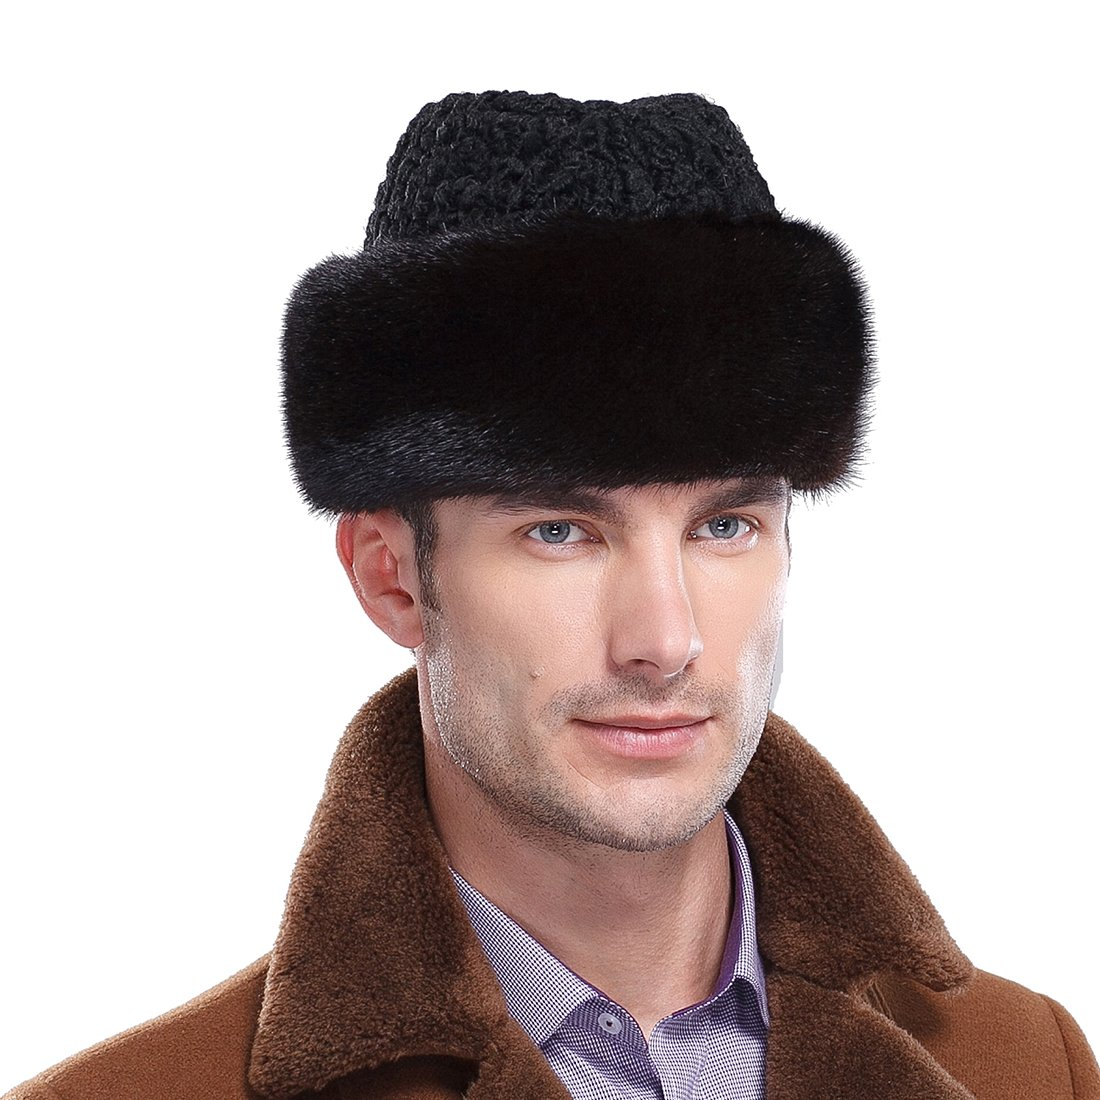 URSFUR Mink Fur Russian Cossack Hat with Lamb Fur Top (One Size, Natural Color) by URSFUR